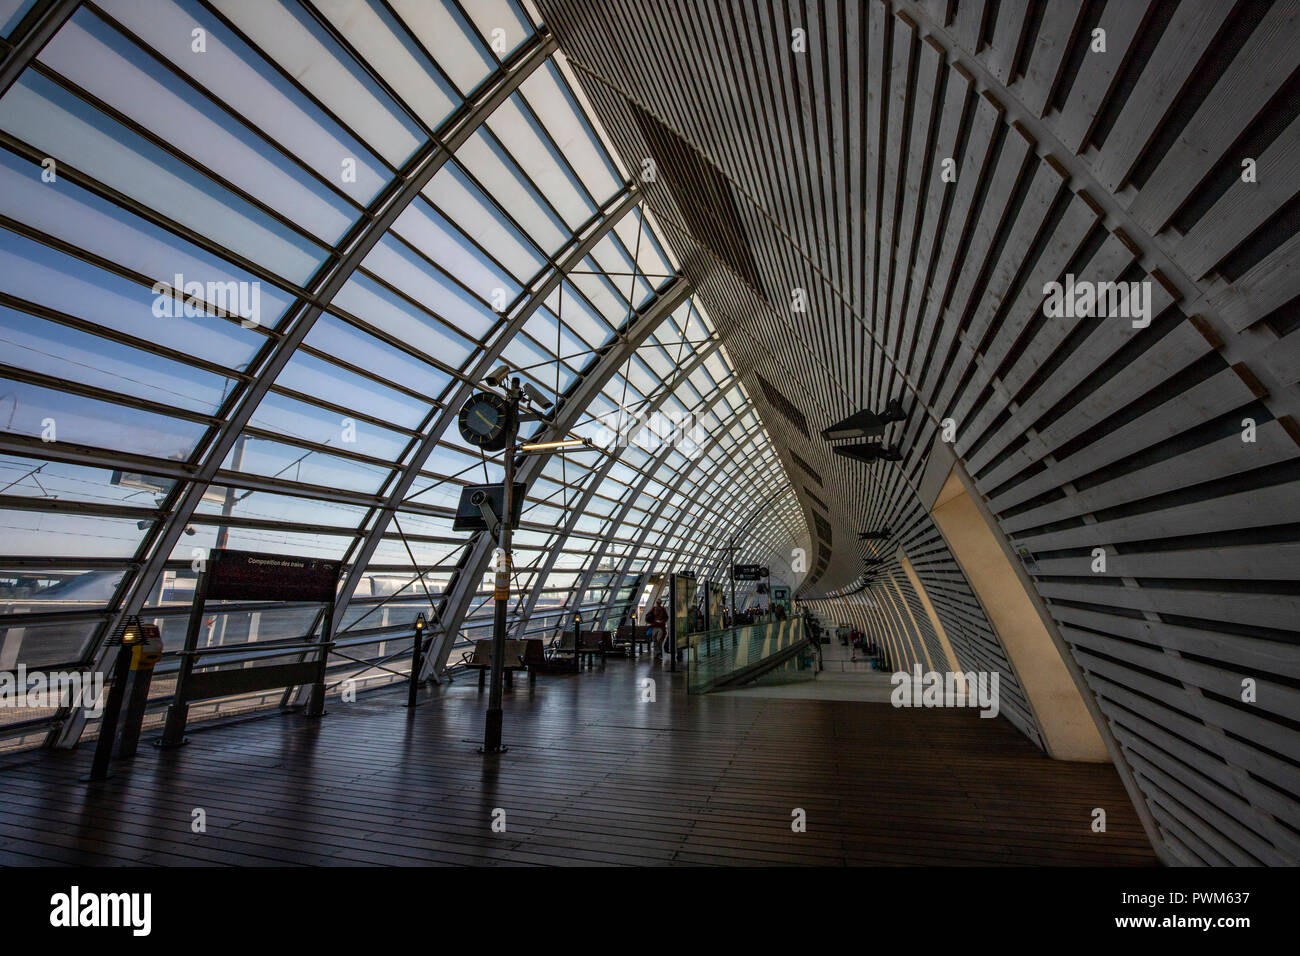 Avignon Tgv Station Was Designed Under The Direction Of Jean Marie Duthilleul Of Arep The Station Development Arm Of Sncf Duthilleul Is A French Ar Stock Photo Alamy